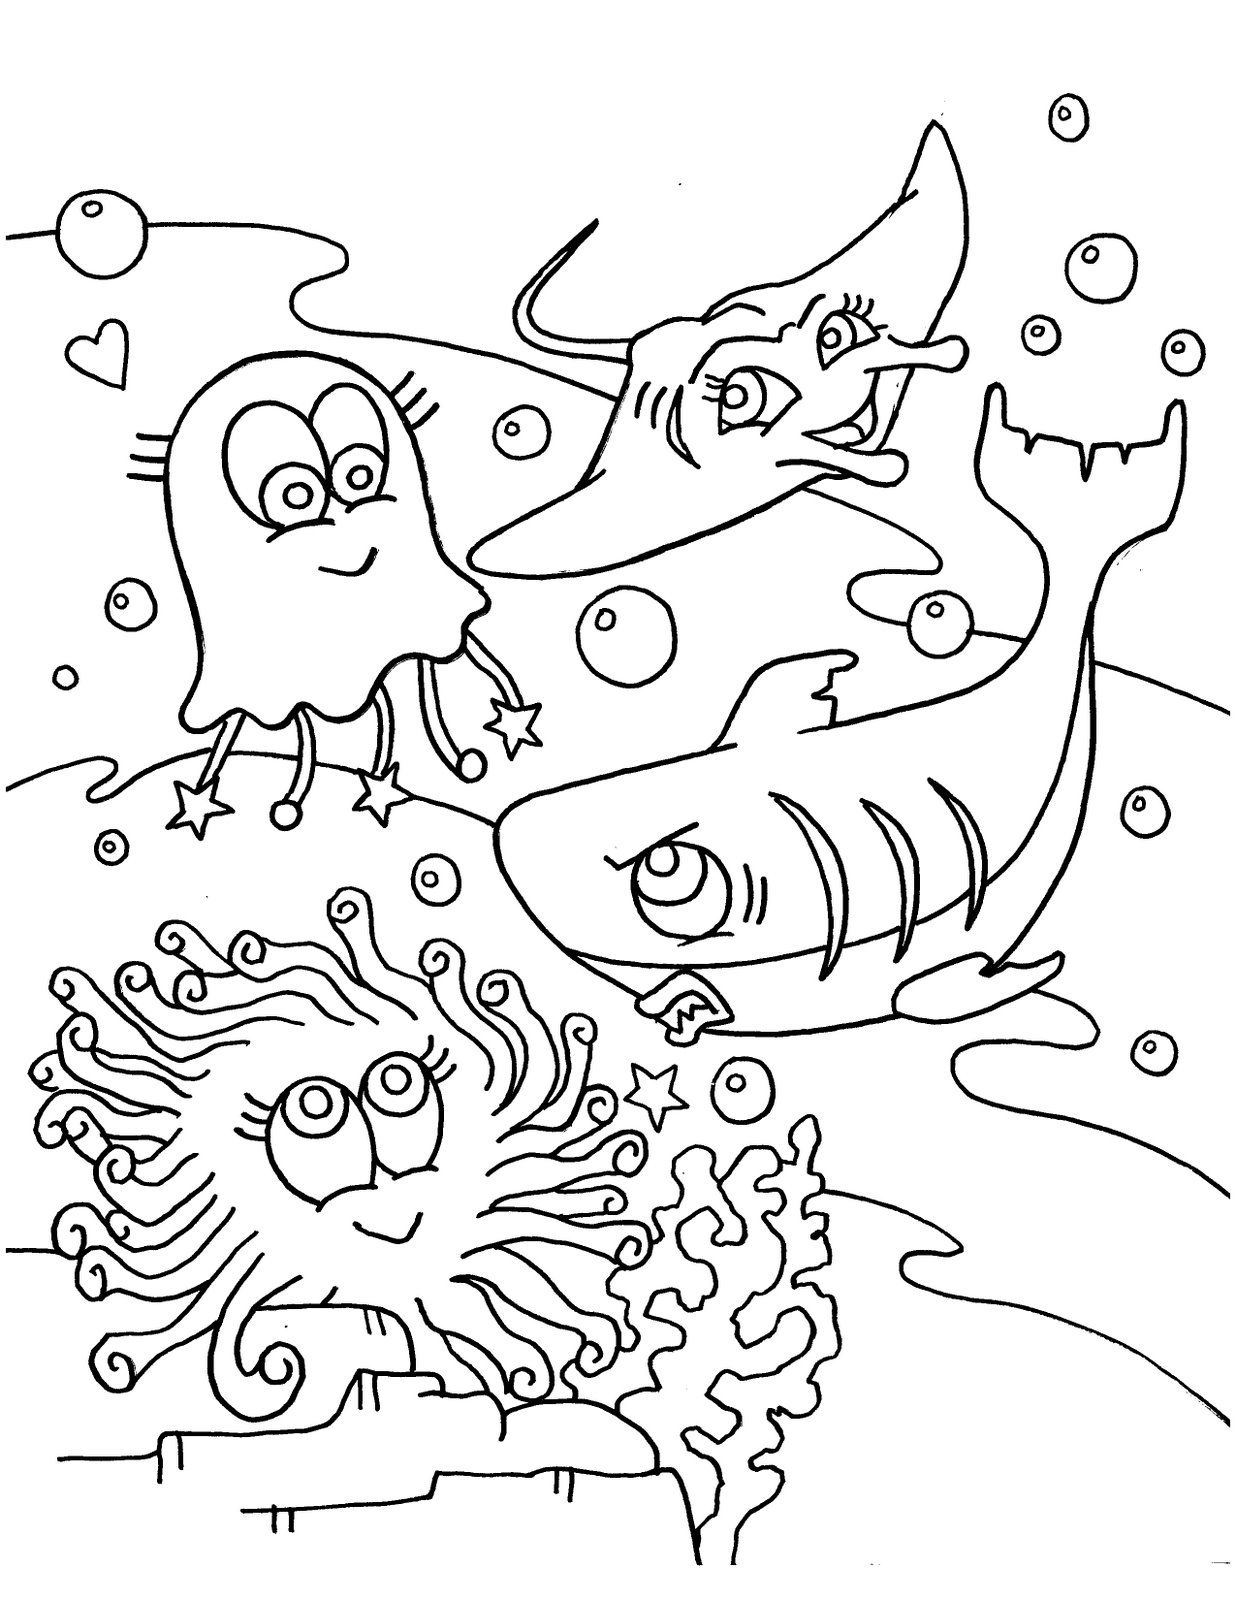 Printable Ocean Coloring Pages Coloring Me Sea Creature Coloring Pages